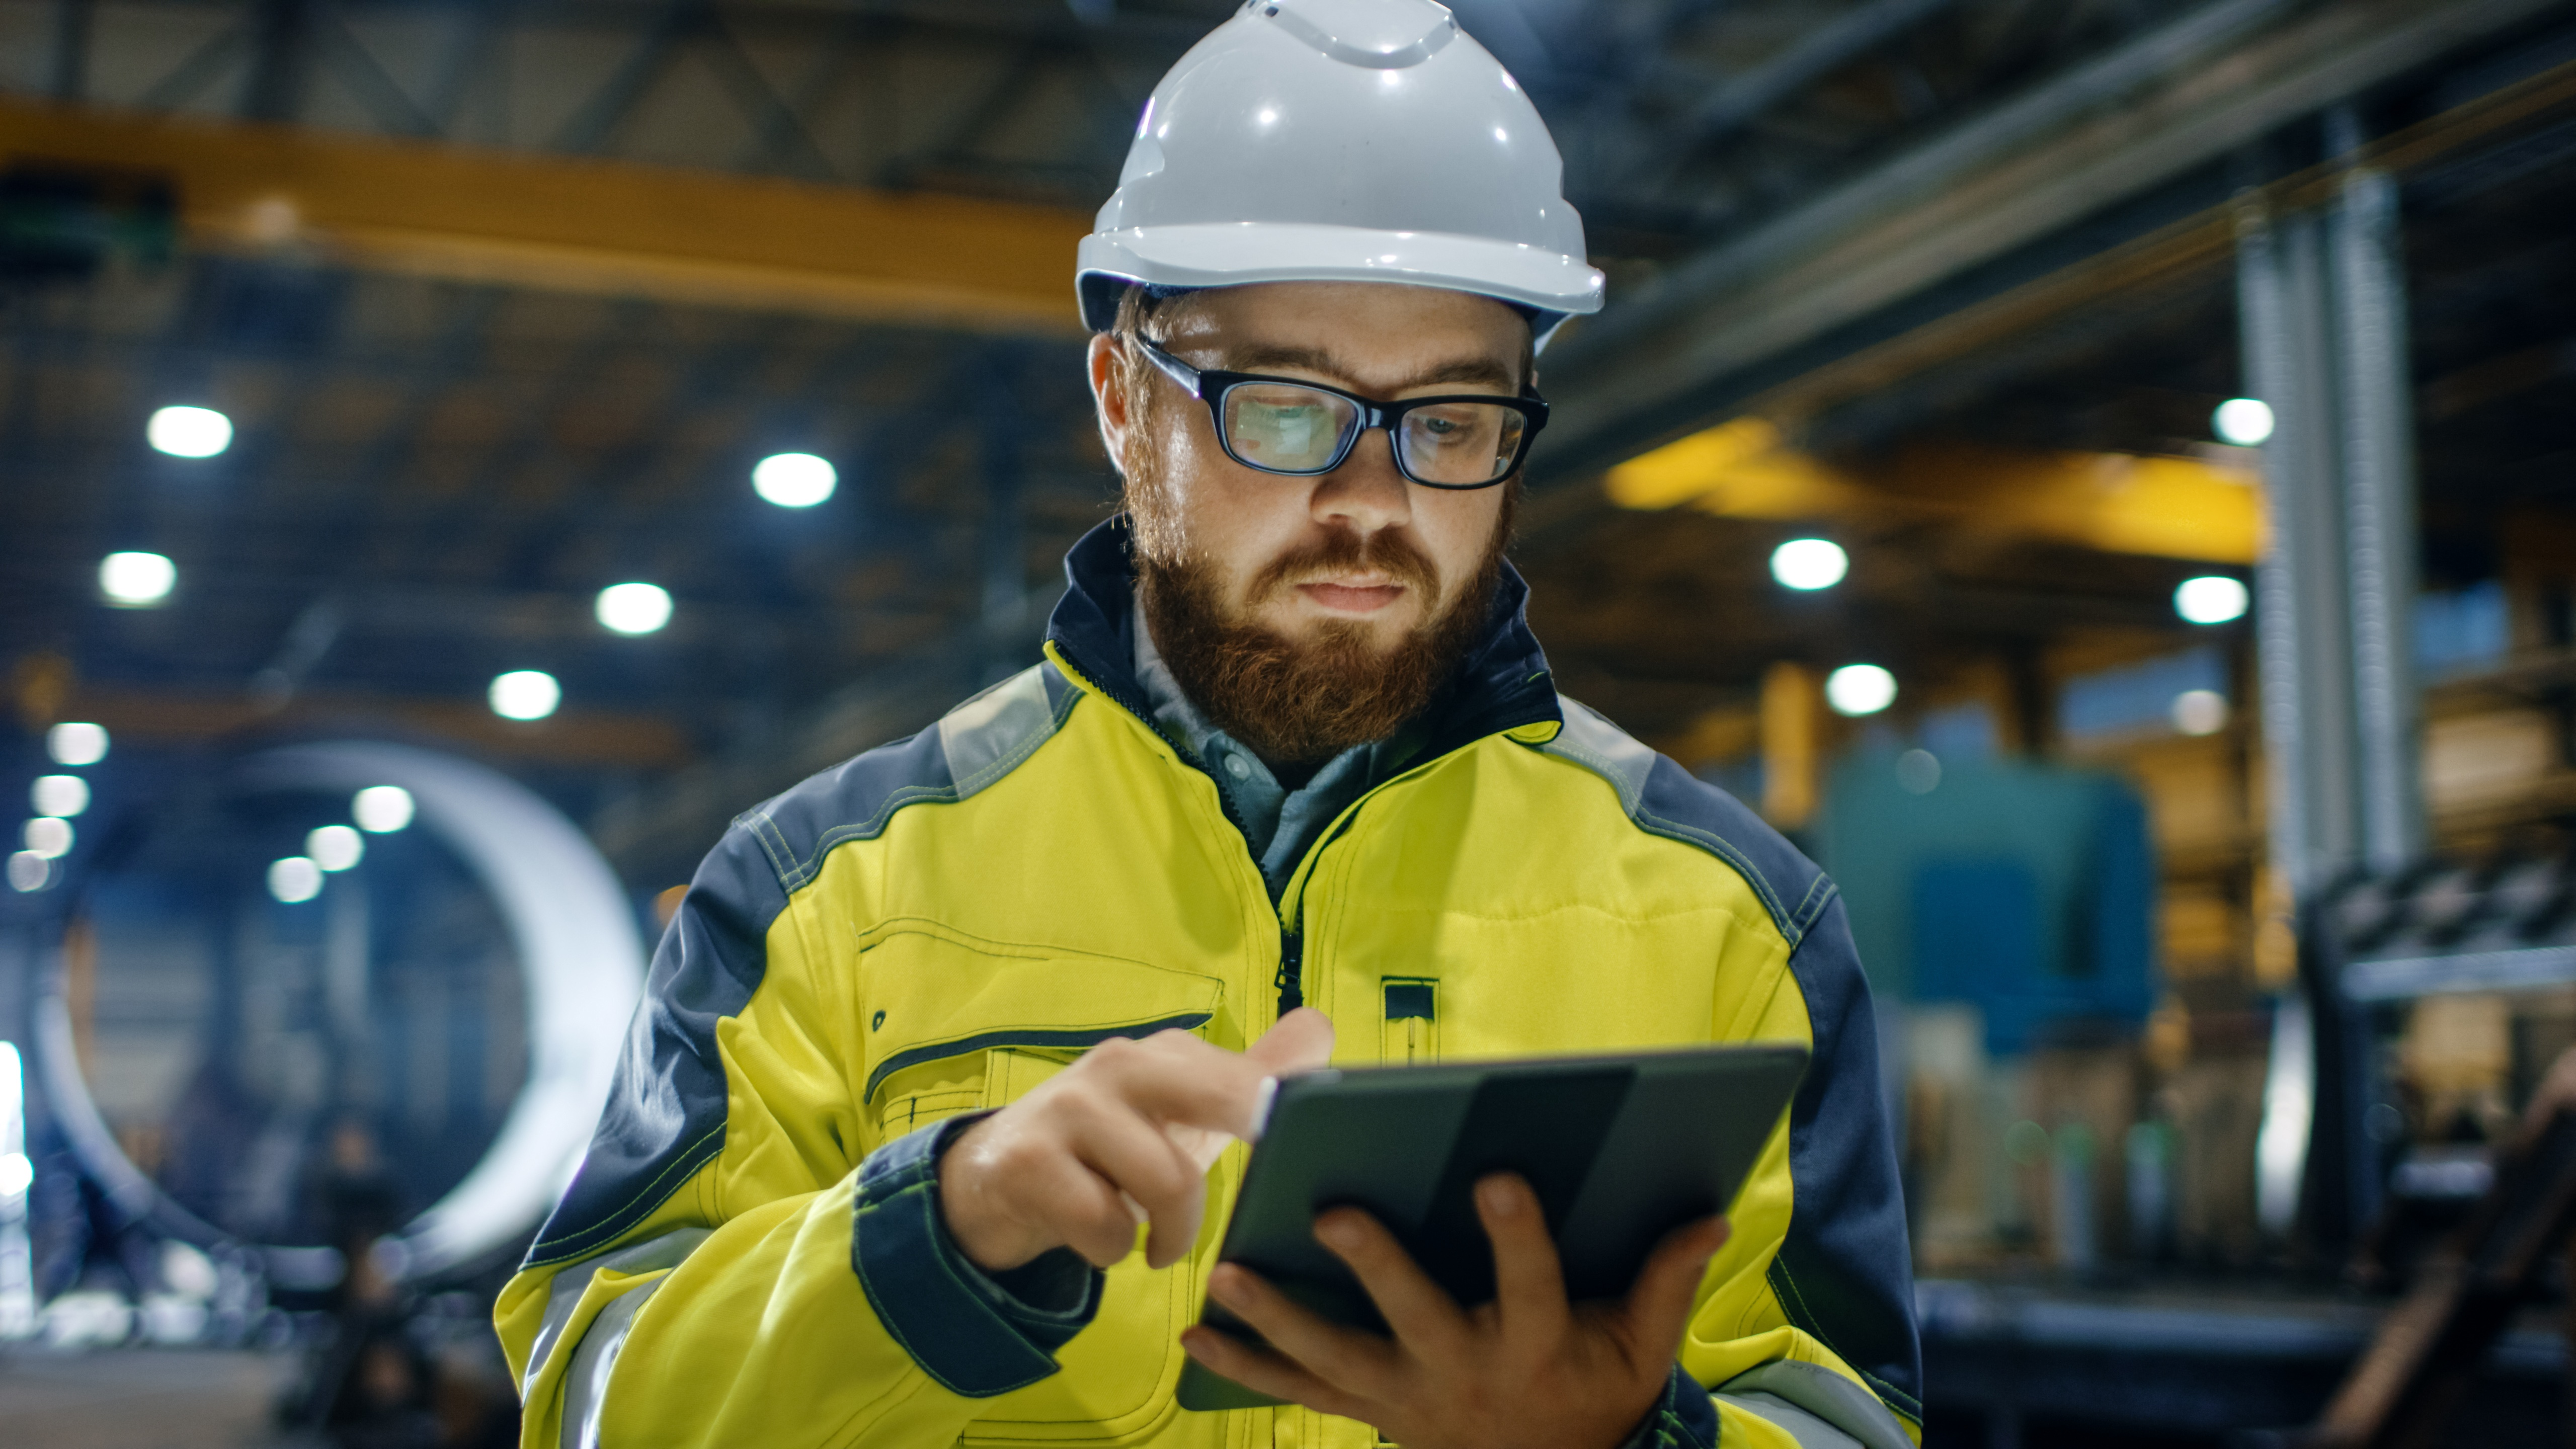 Inspection Solutions is a mobile inspection app that can be customized to serve field inspectors in any industry.